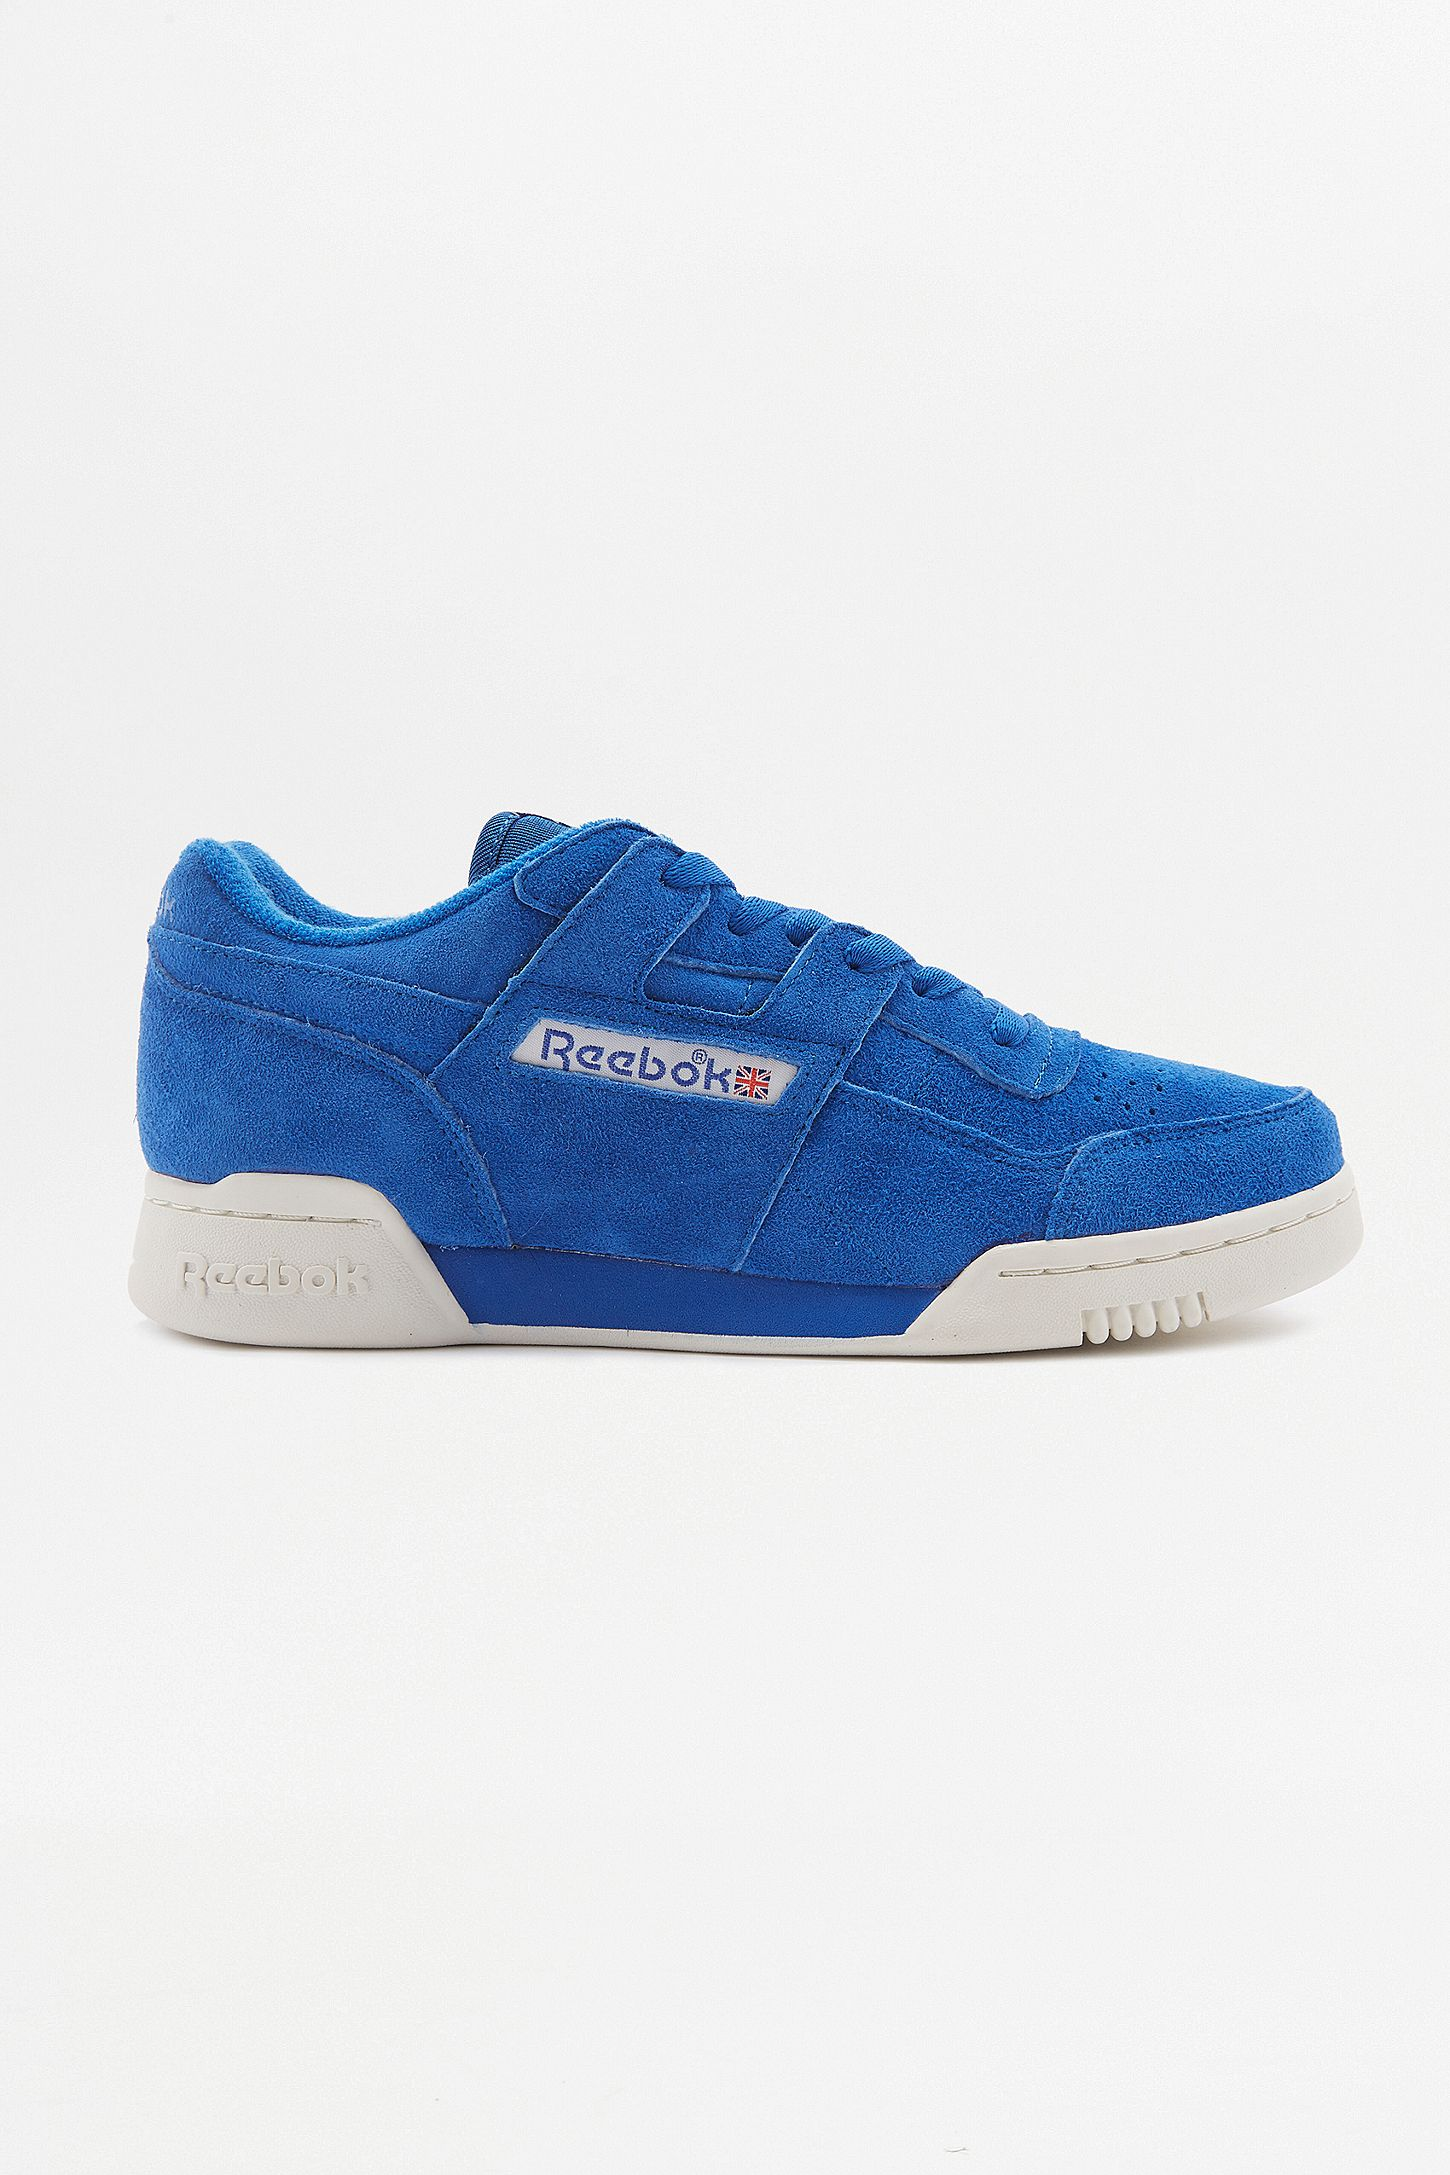 Reebok Workout Plus Vintage Awesome Blue Trainers. Click on image to zoom.  Hover to zoom. Double Tap to Zoom ad6e7586c